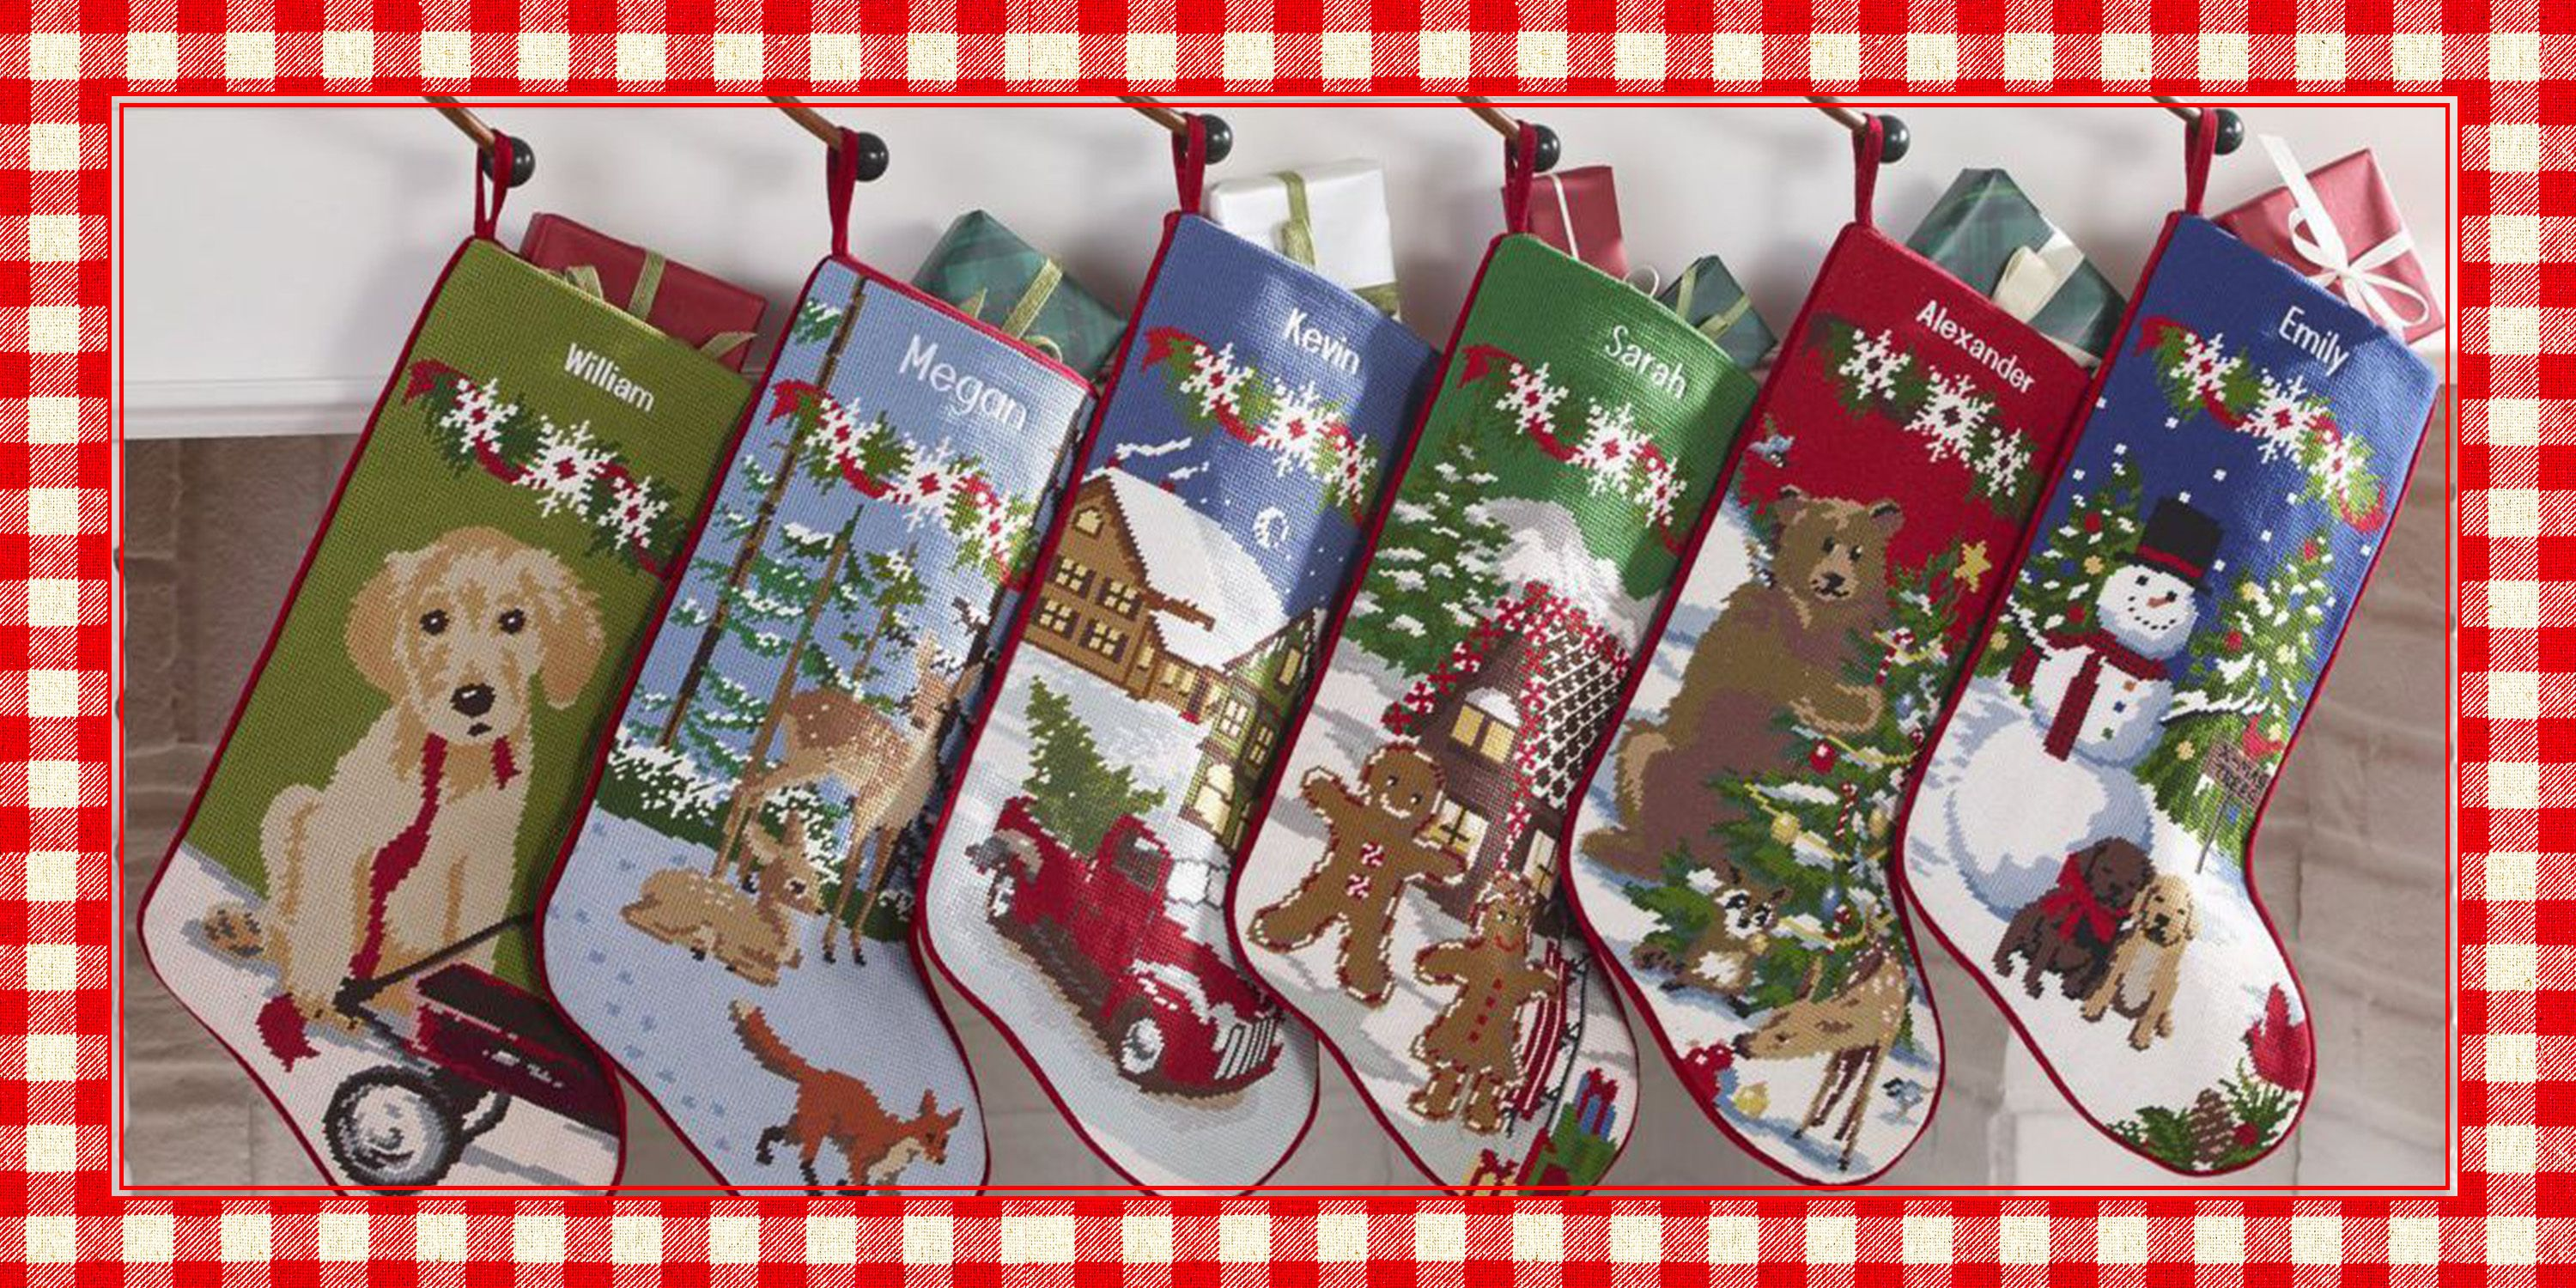 40 Best Personalized Christmas Stockings - Unique Christmas Stocking Ideas